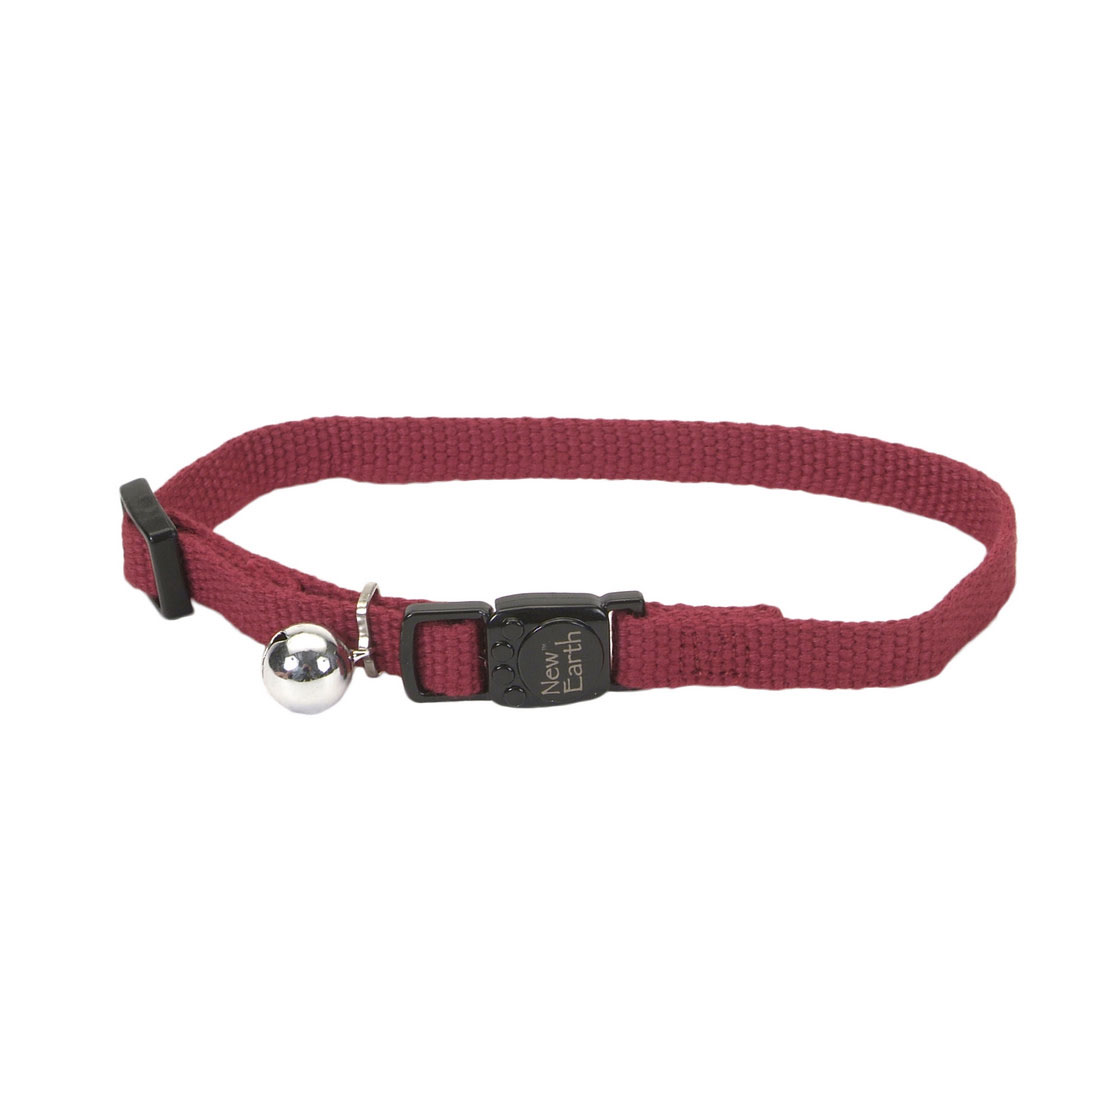 Coastal New Earth Soy Adjustable Breakaway Cat Collar, Cranberry, 8-12-in (Size: 8-12-in) Image